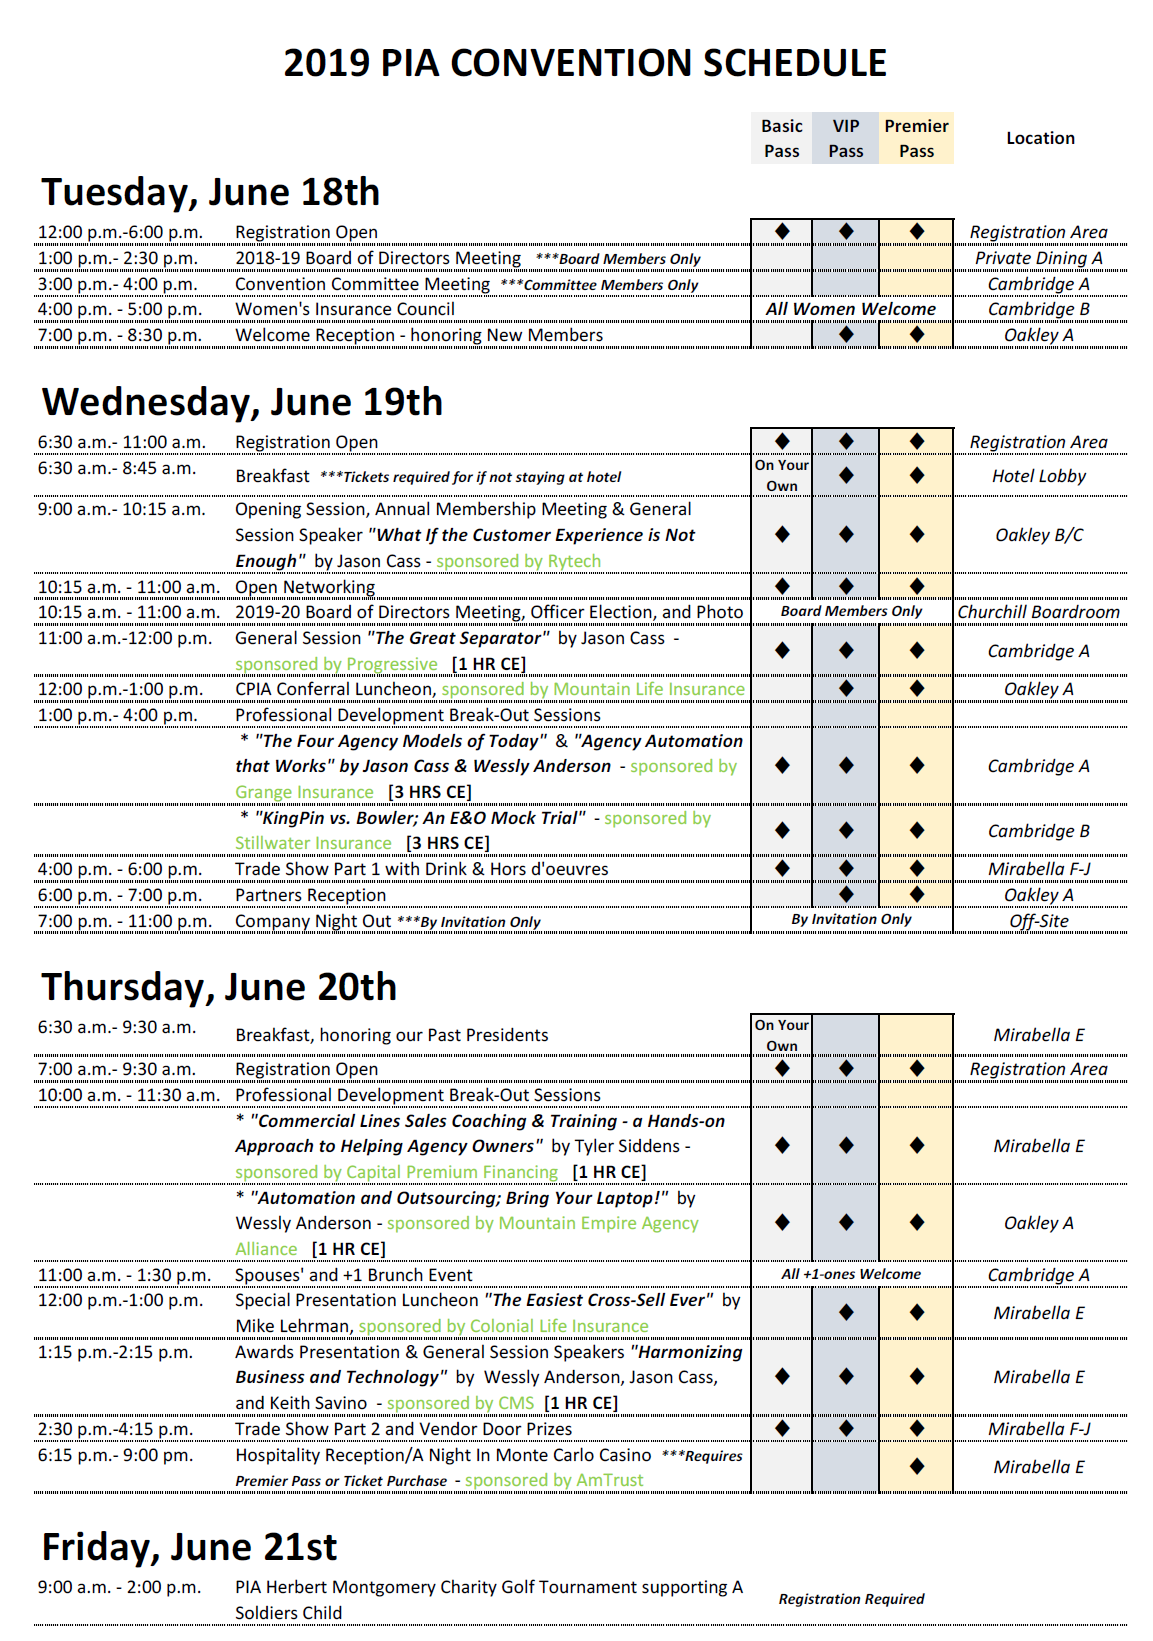 2019 Convention Schedule.png